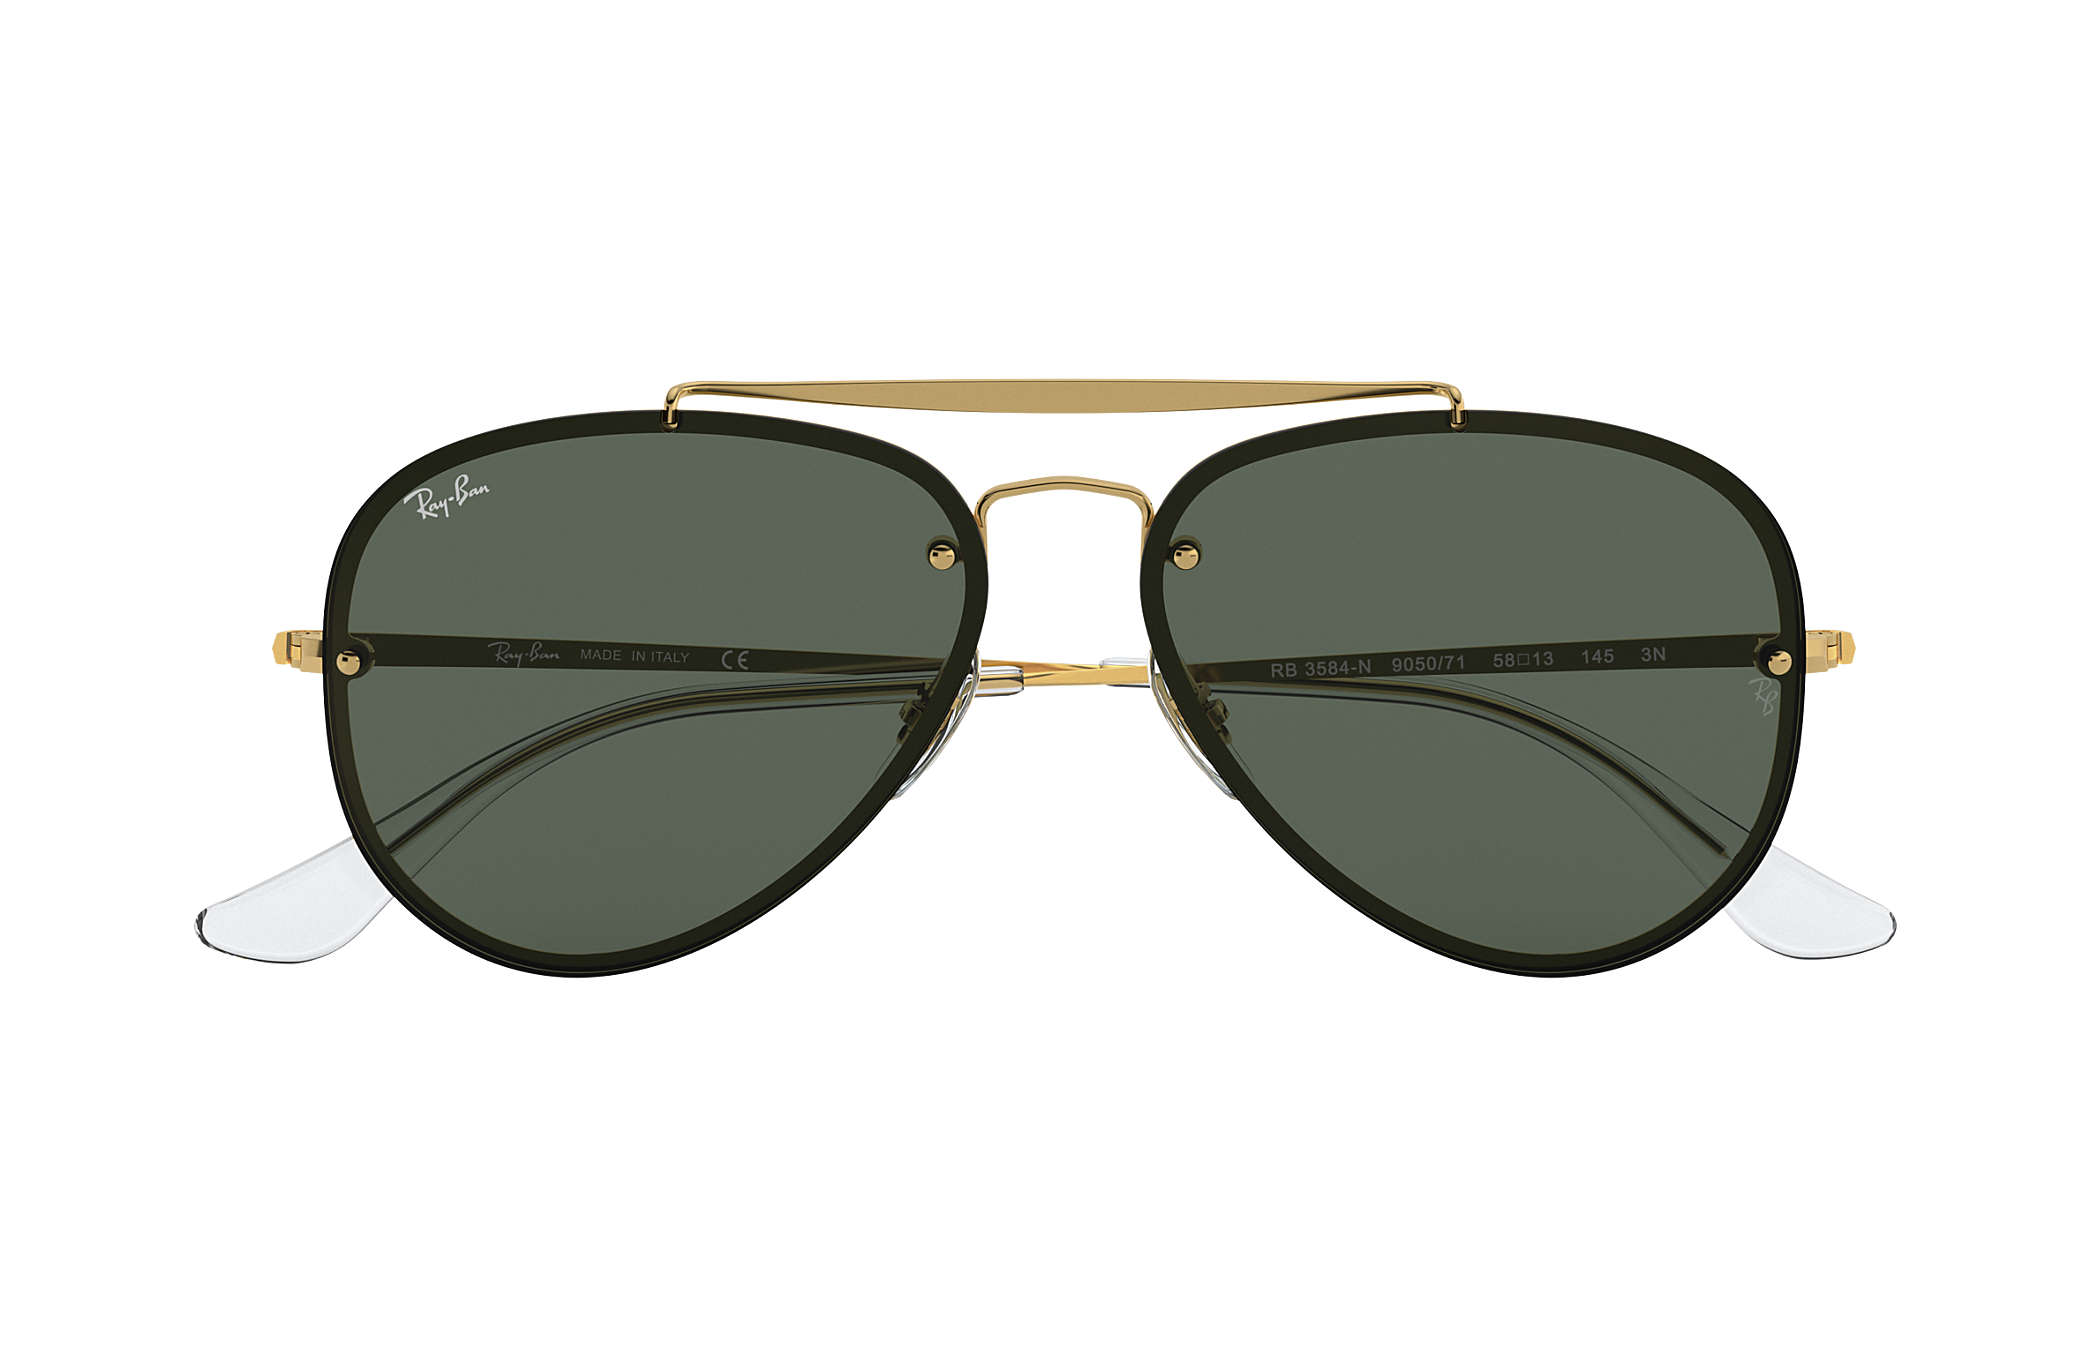 c85daabc5 Ray-Ban Blaze Aviator RB3584N Gold - Steel - Green Lenses ...